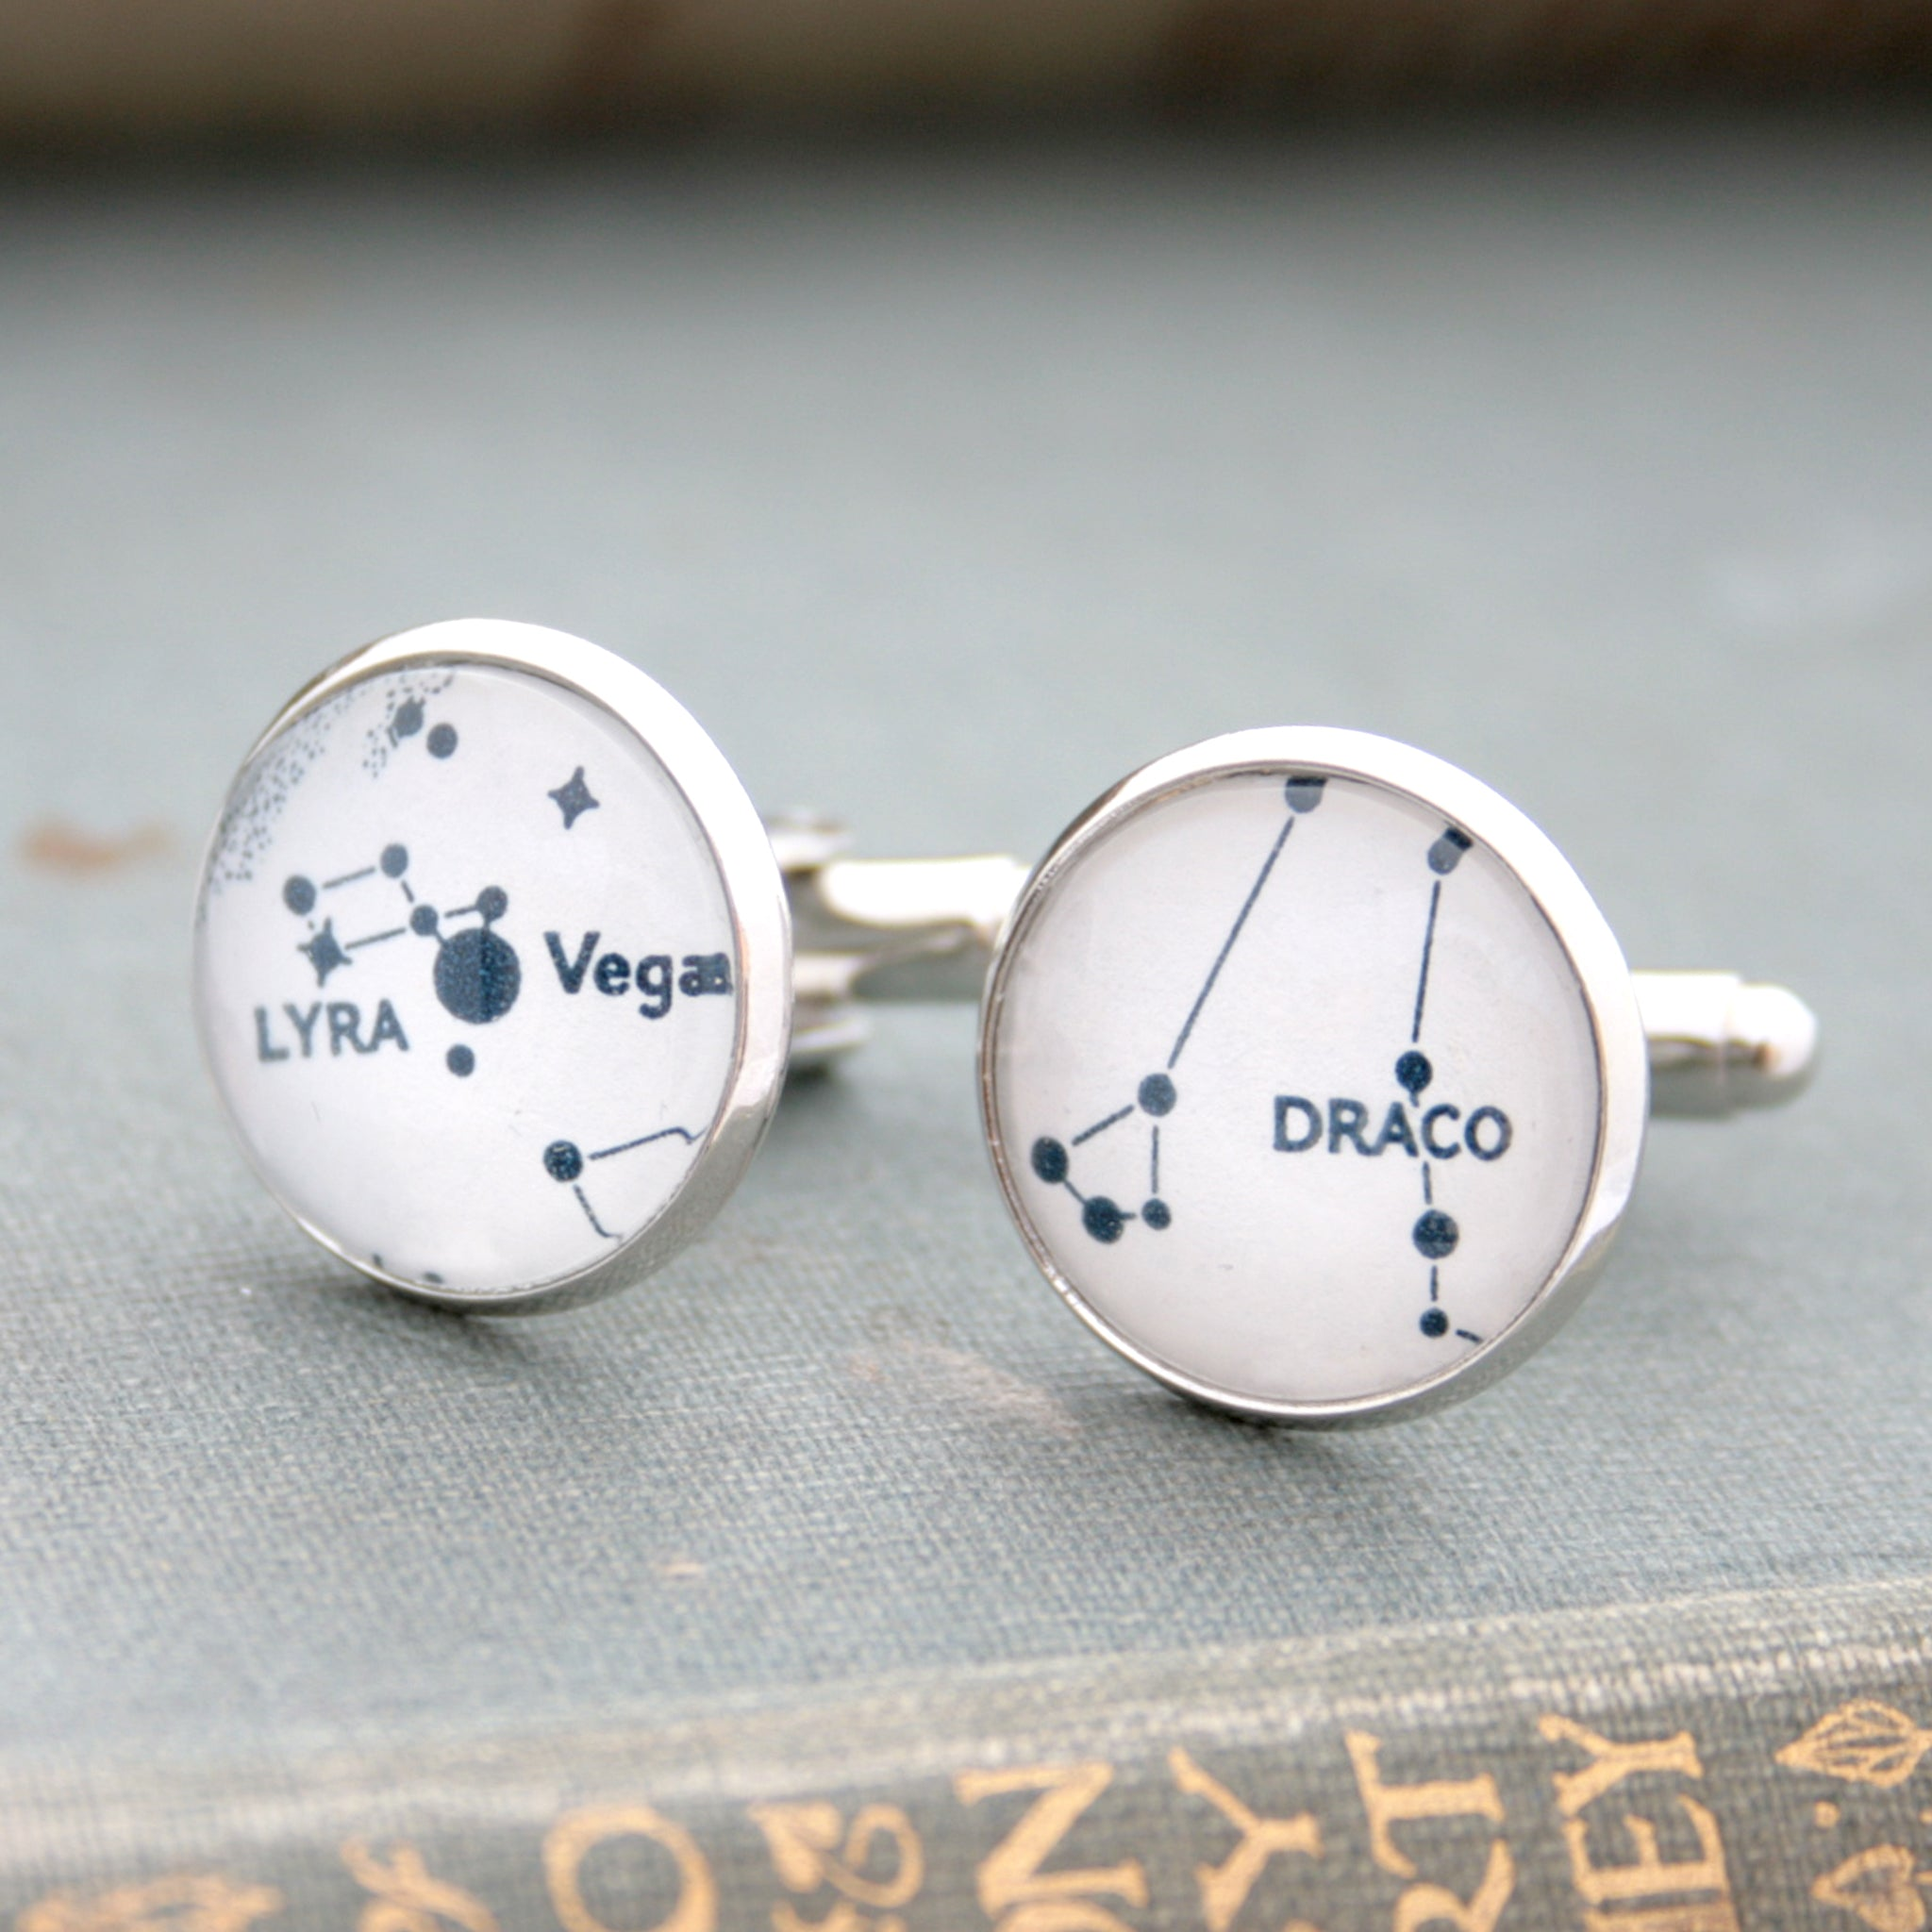 White cufflinks on silver blanks featuring Lyra and Draco star constellations